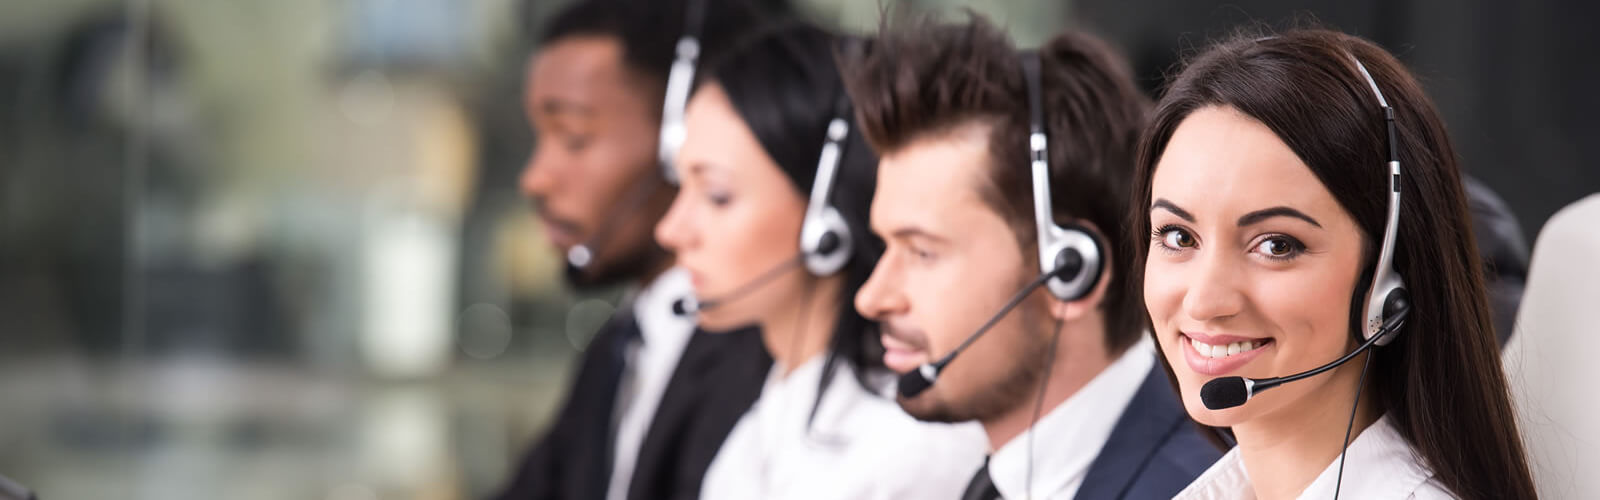 Technology Management Image: Affordable Inbound Call Center Outsourcing Services Provider